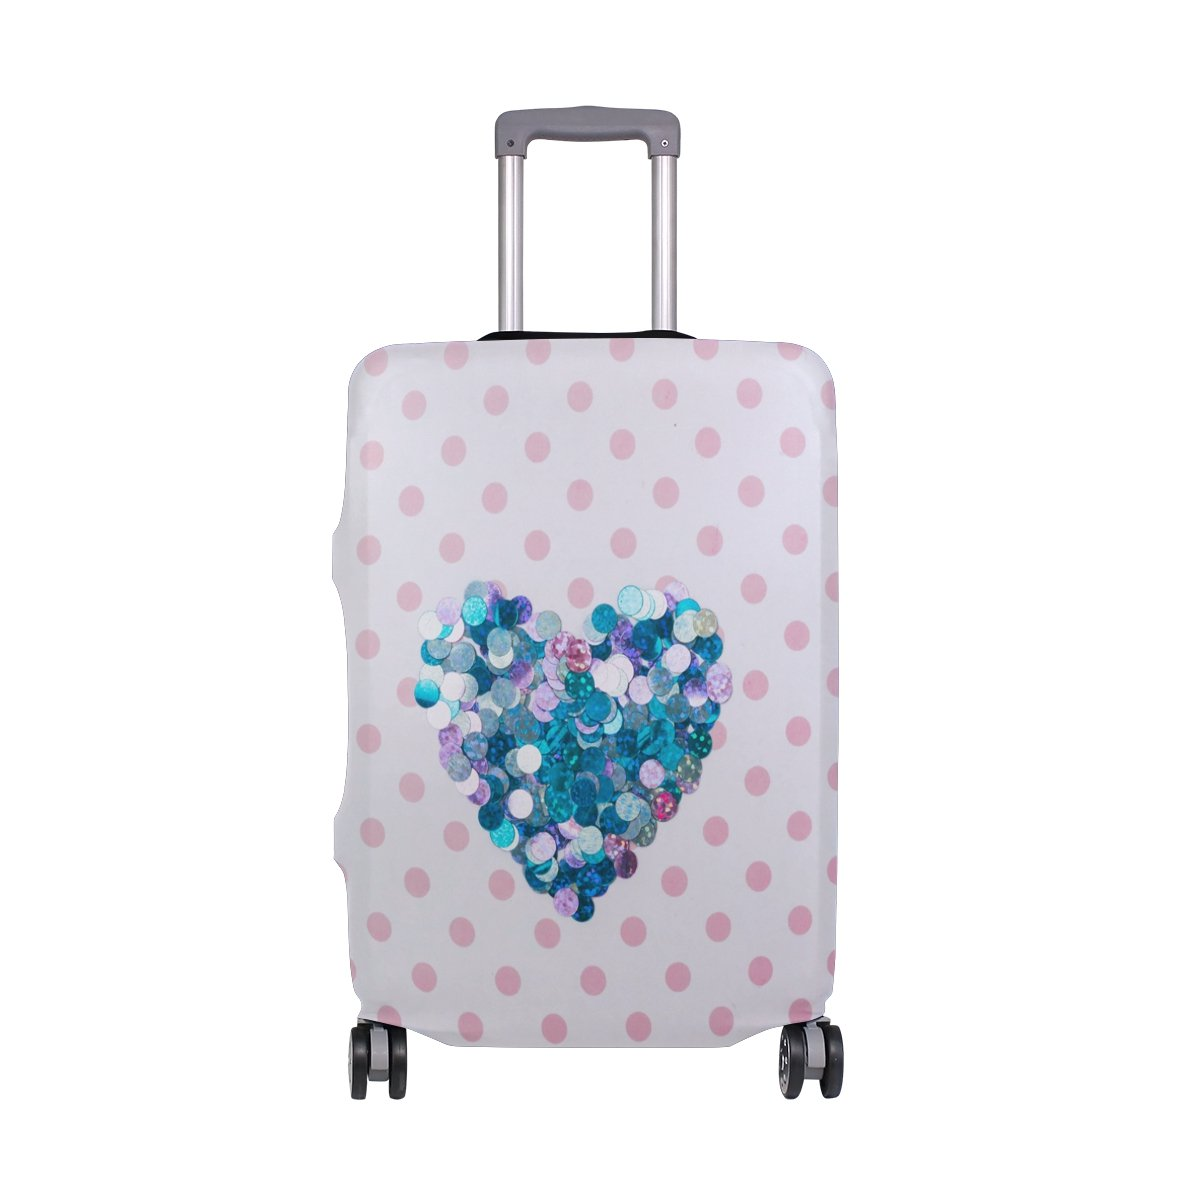 Pink Love Luggage Cover Suitcase Protector Washable Spandex Baggage Cover with Zipper for Travel, Business and Outdoor